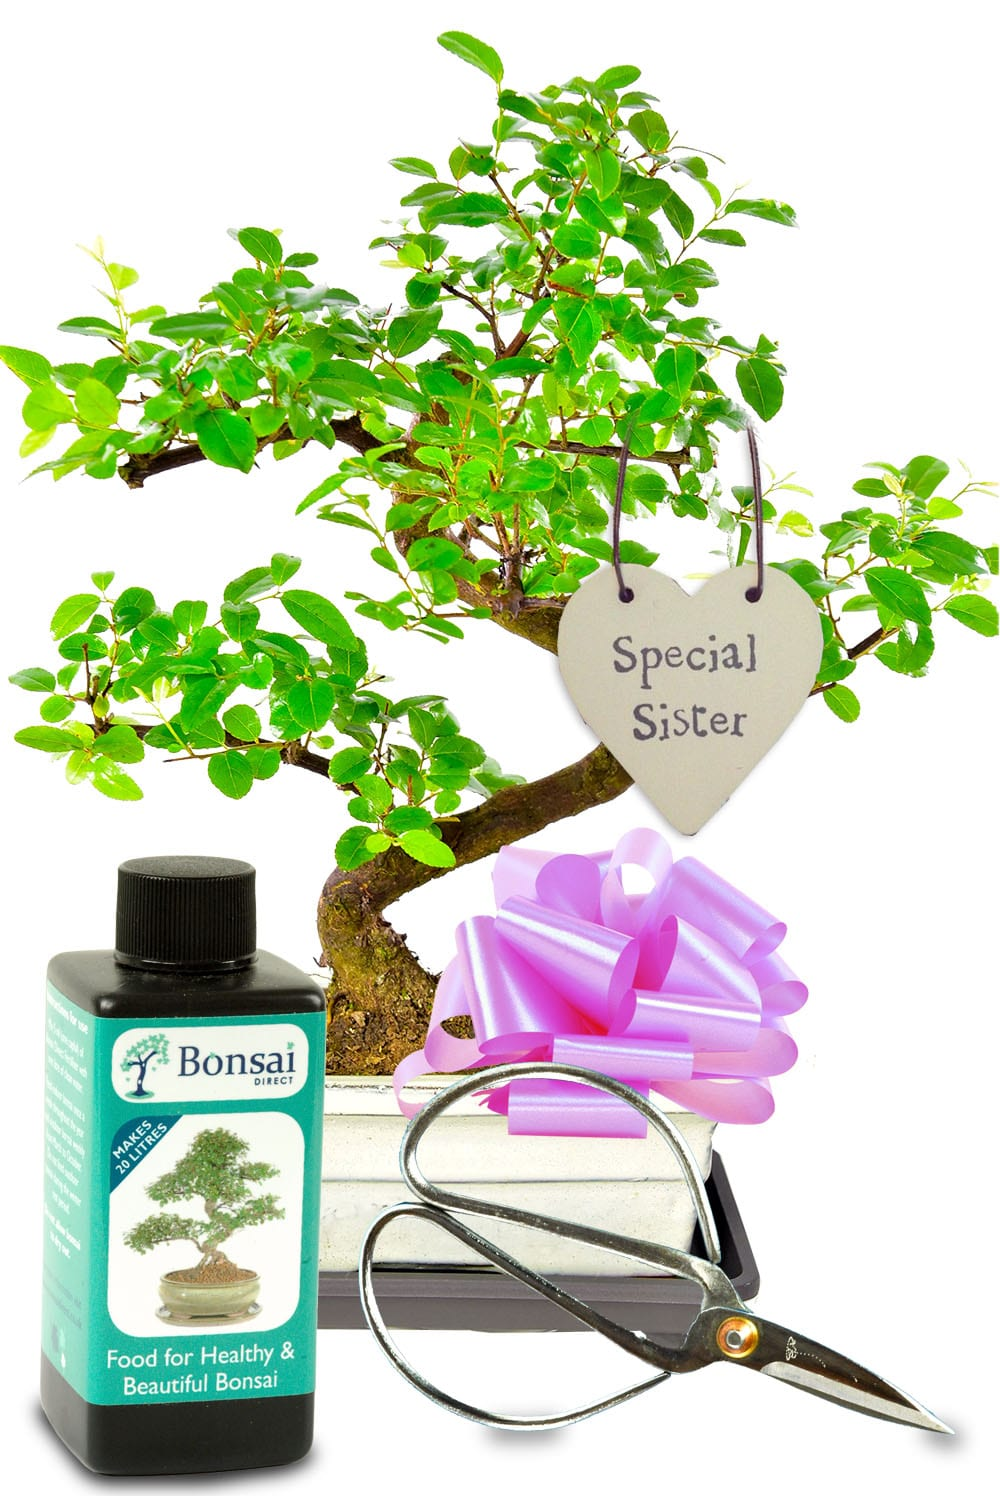 Fruiting bonsai gift for your sister